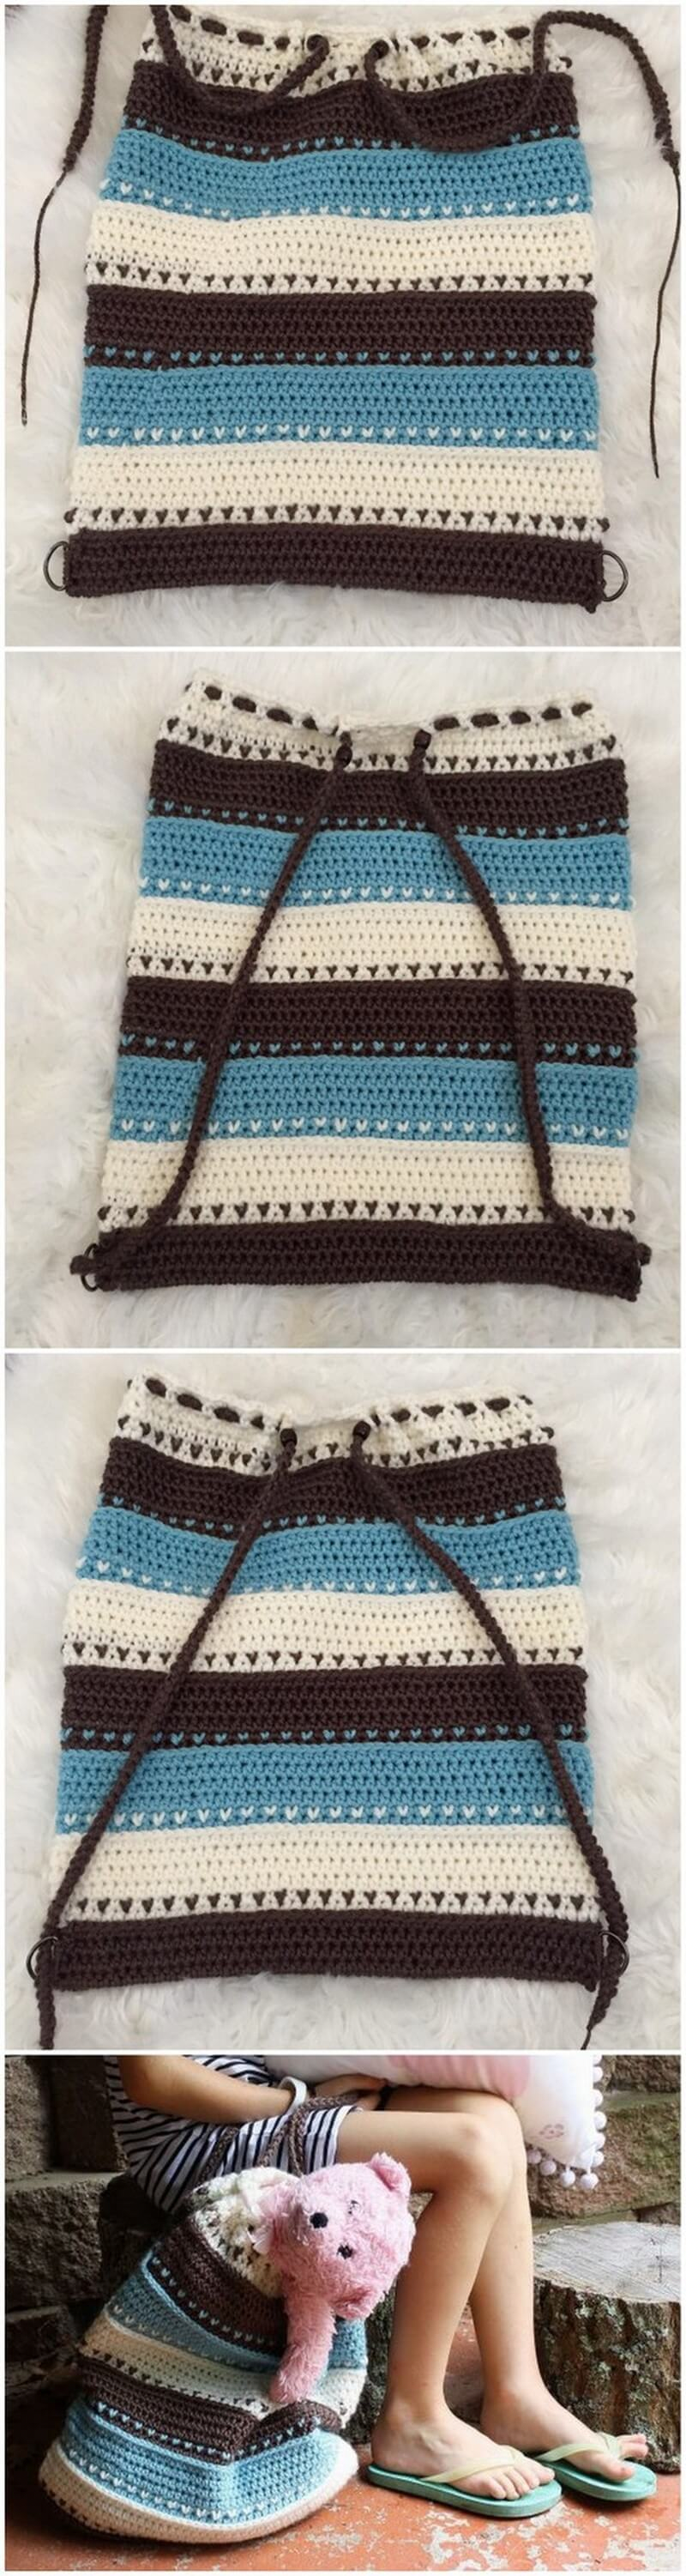 Crochet Bag Pattern (53)